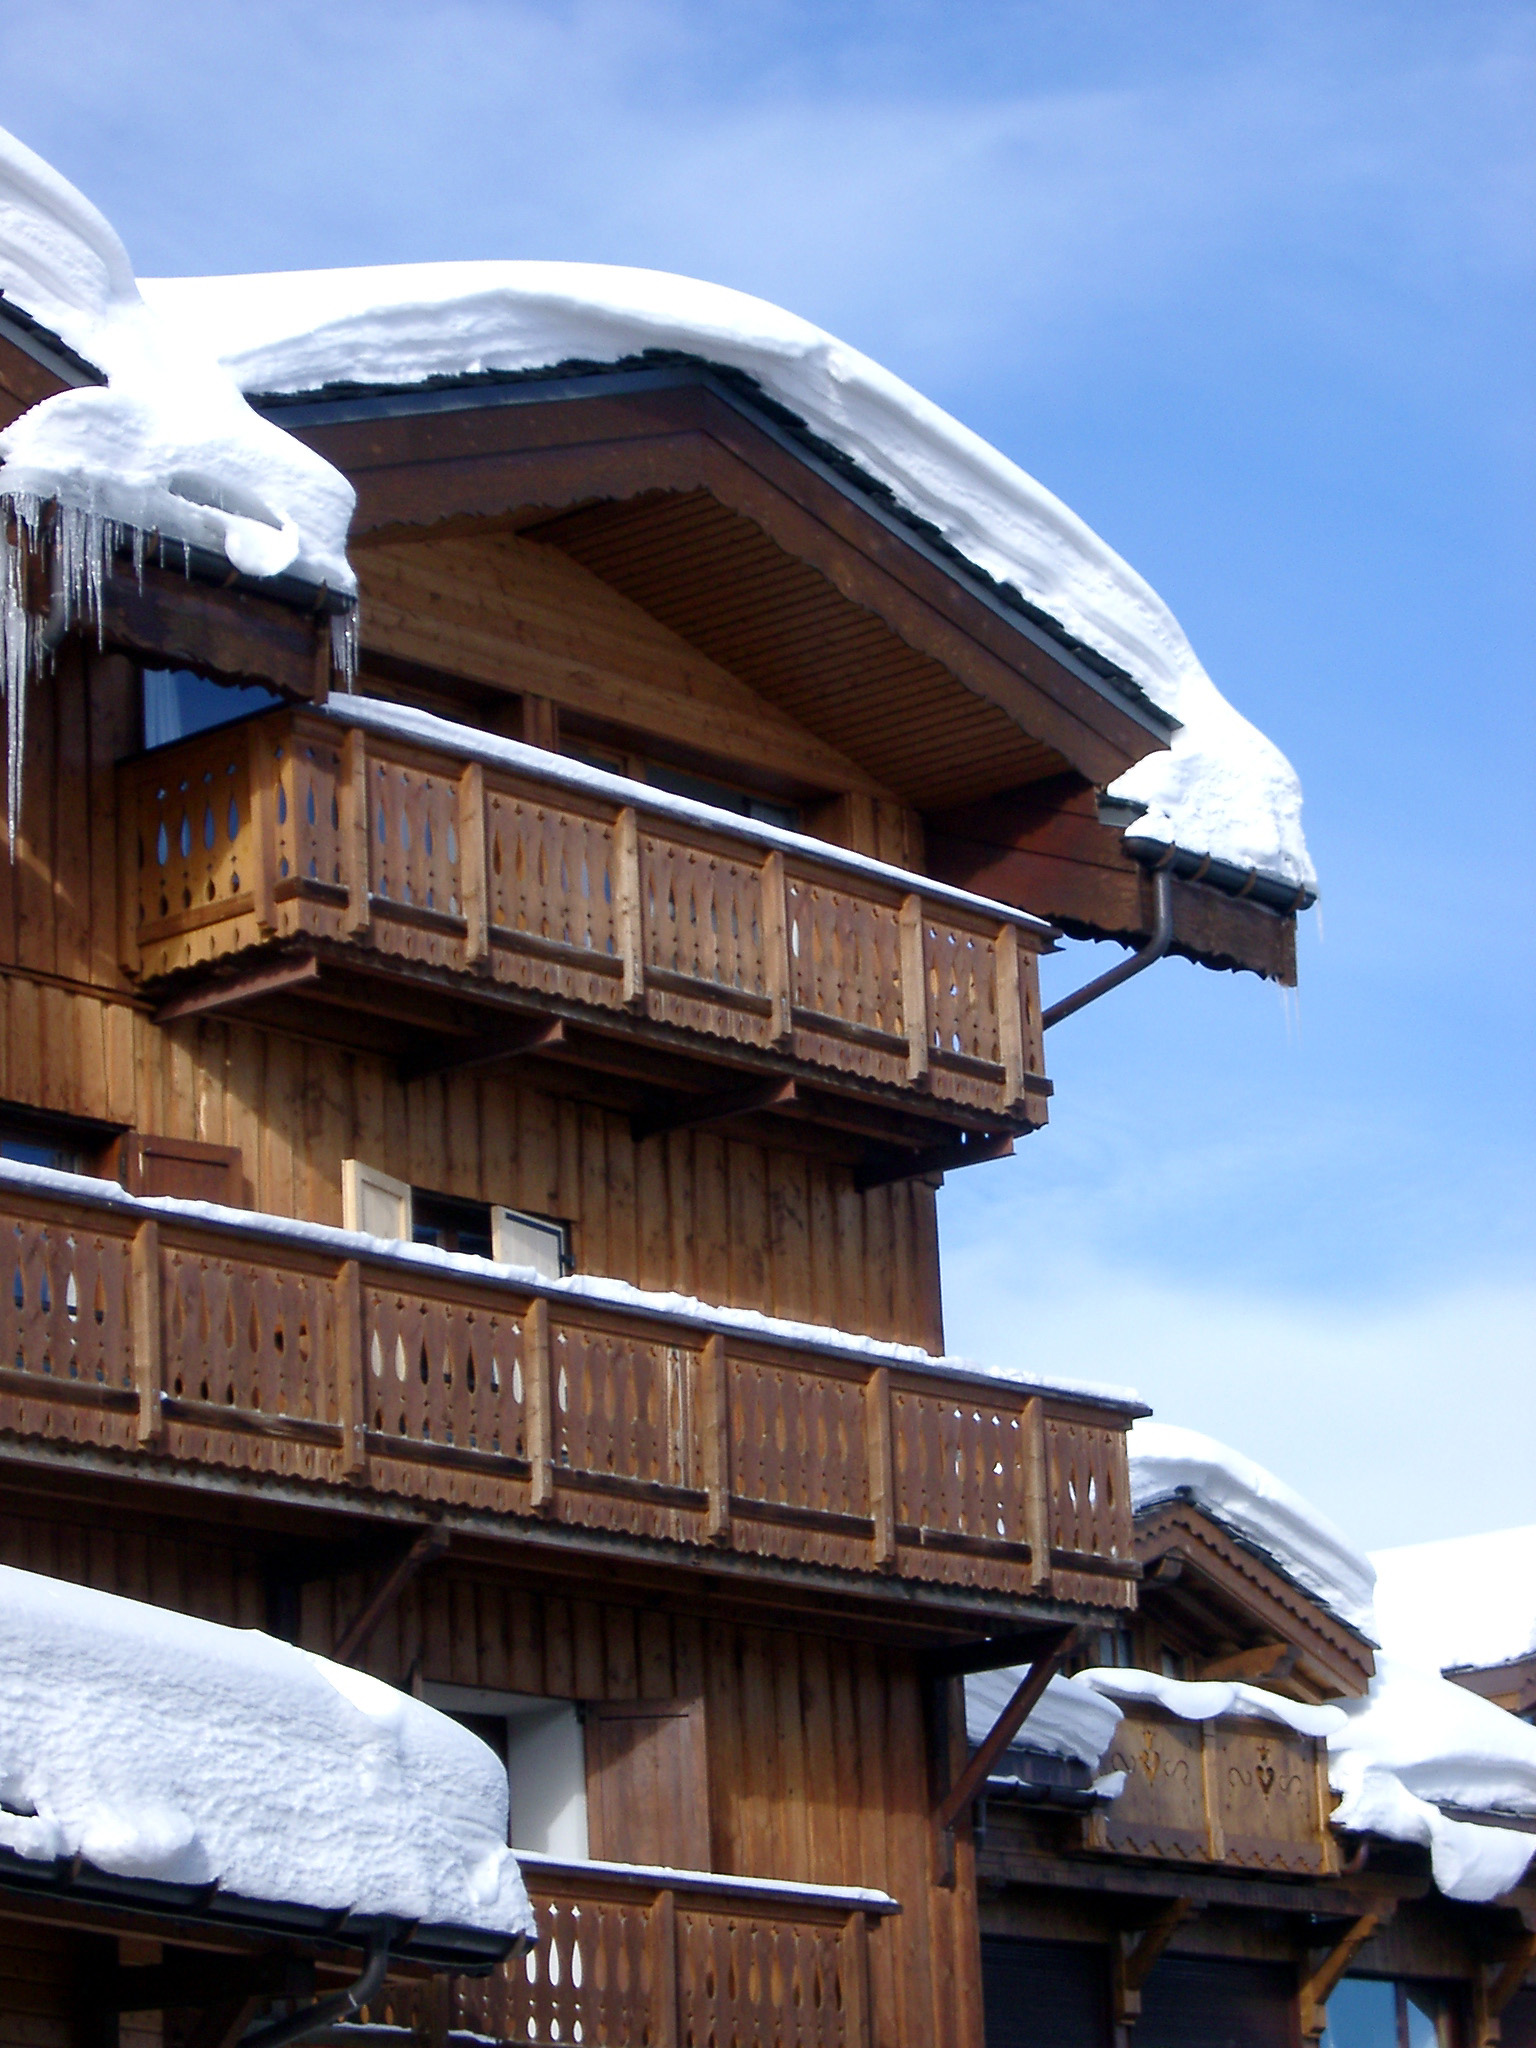 Snow Covering Rooftop of Vintage Wooden Alpine Lodge on Lighter Blue Sky Background.